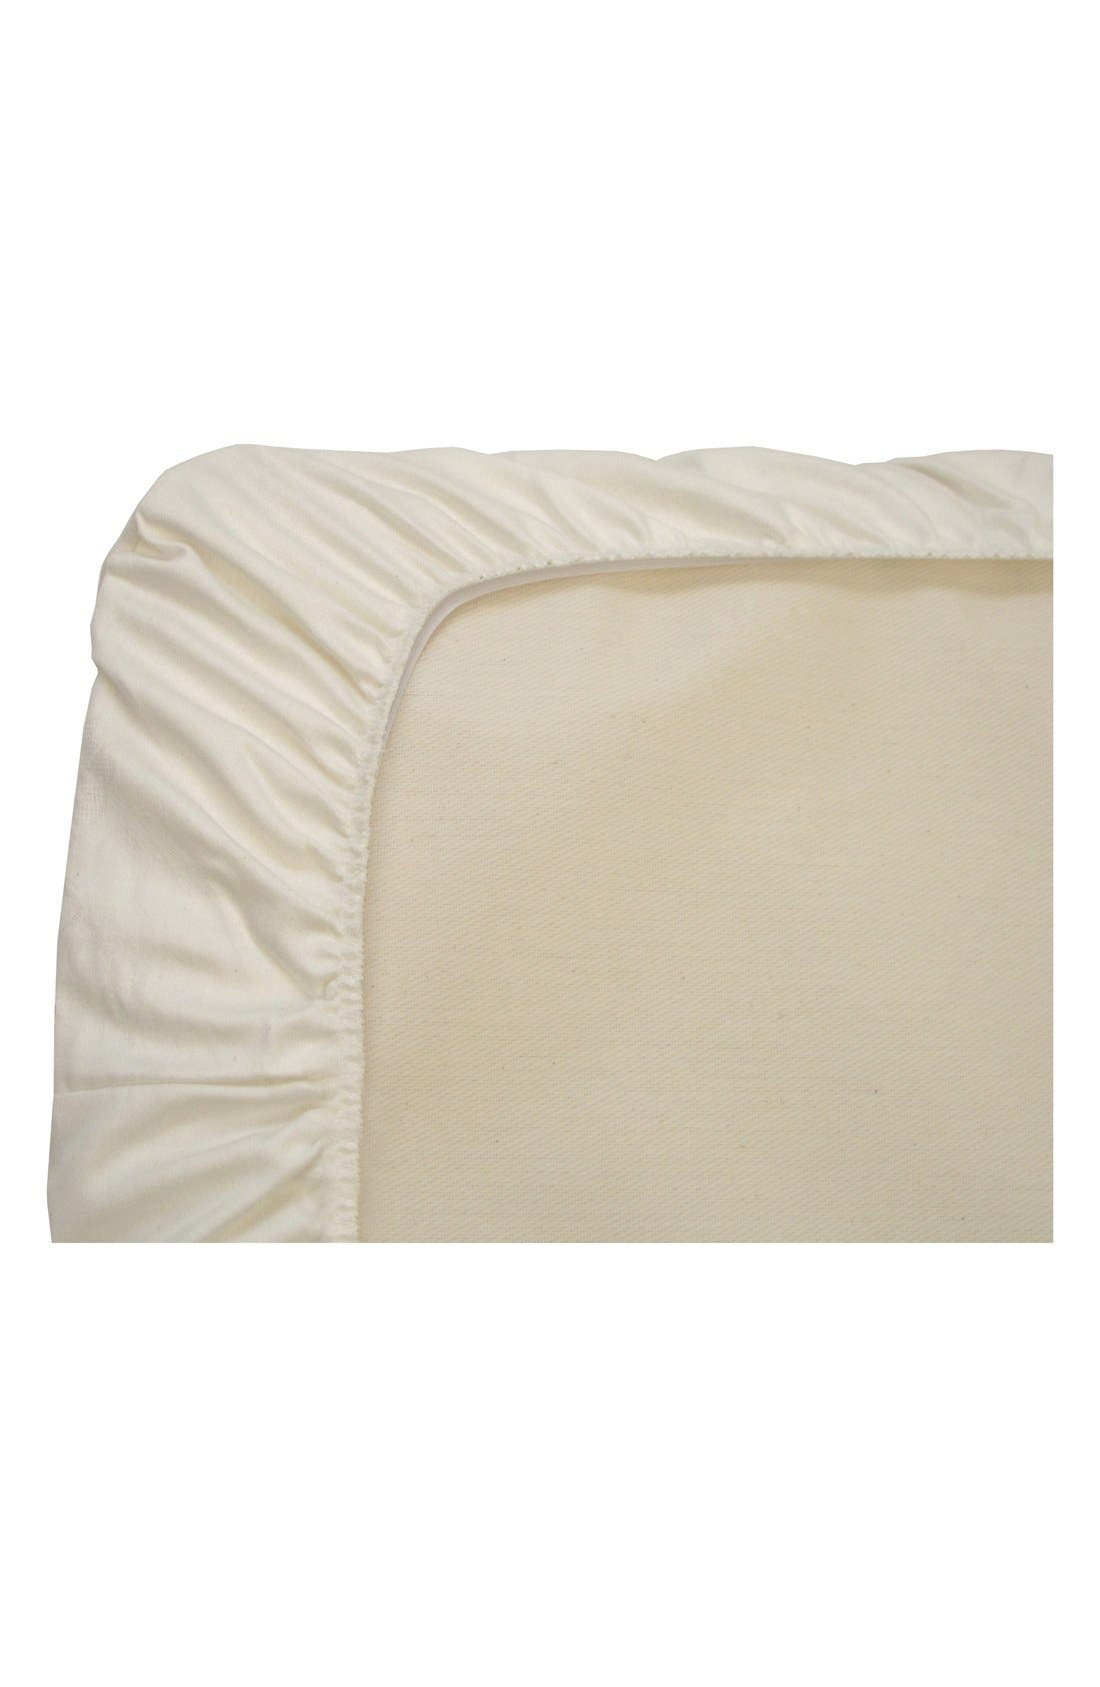 Organic Cotton Waterproof Fitted Crib Protector Pad,                             Alternate thumbnail 4, color,                             250